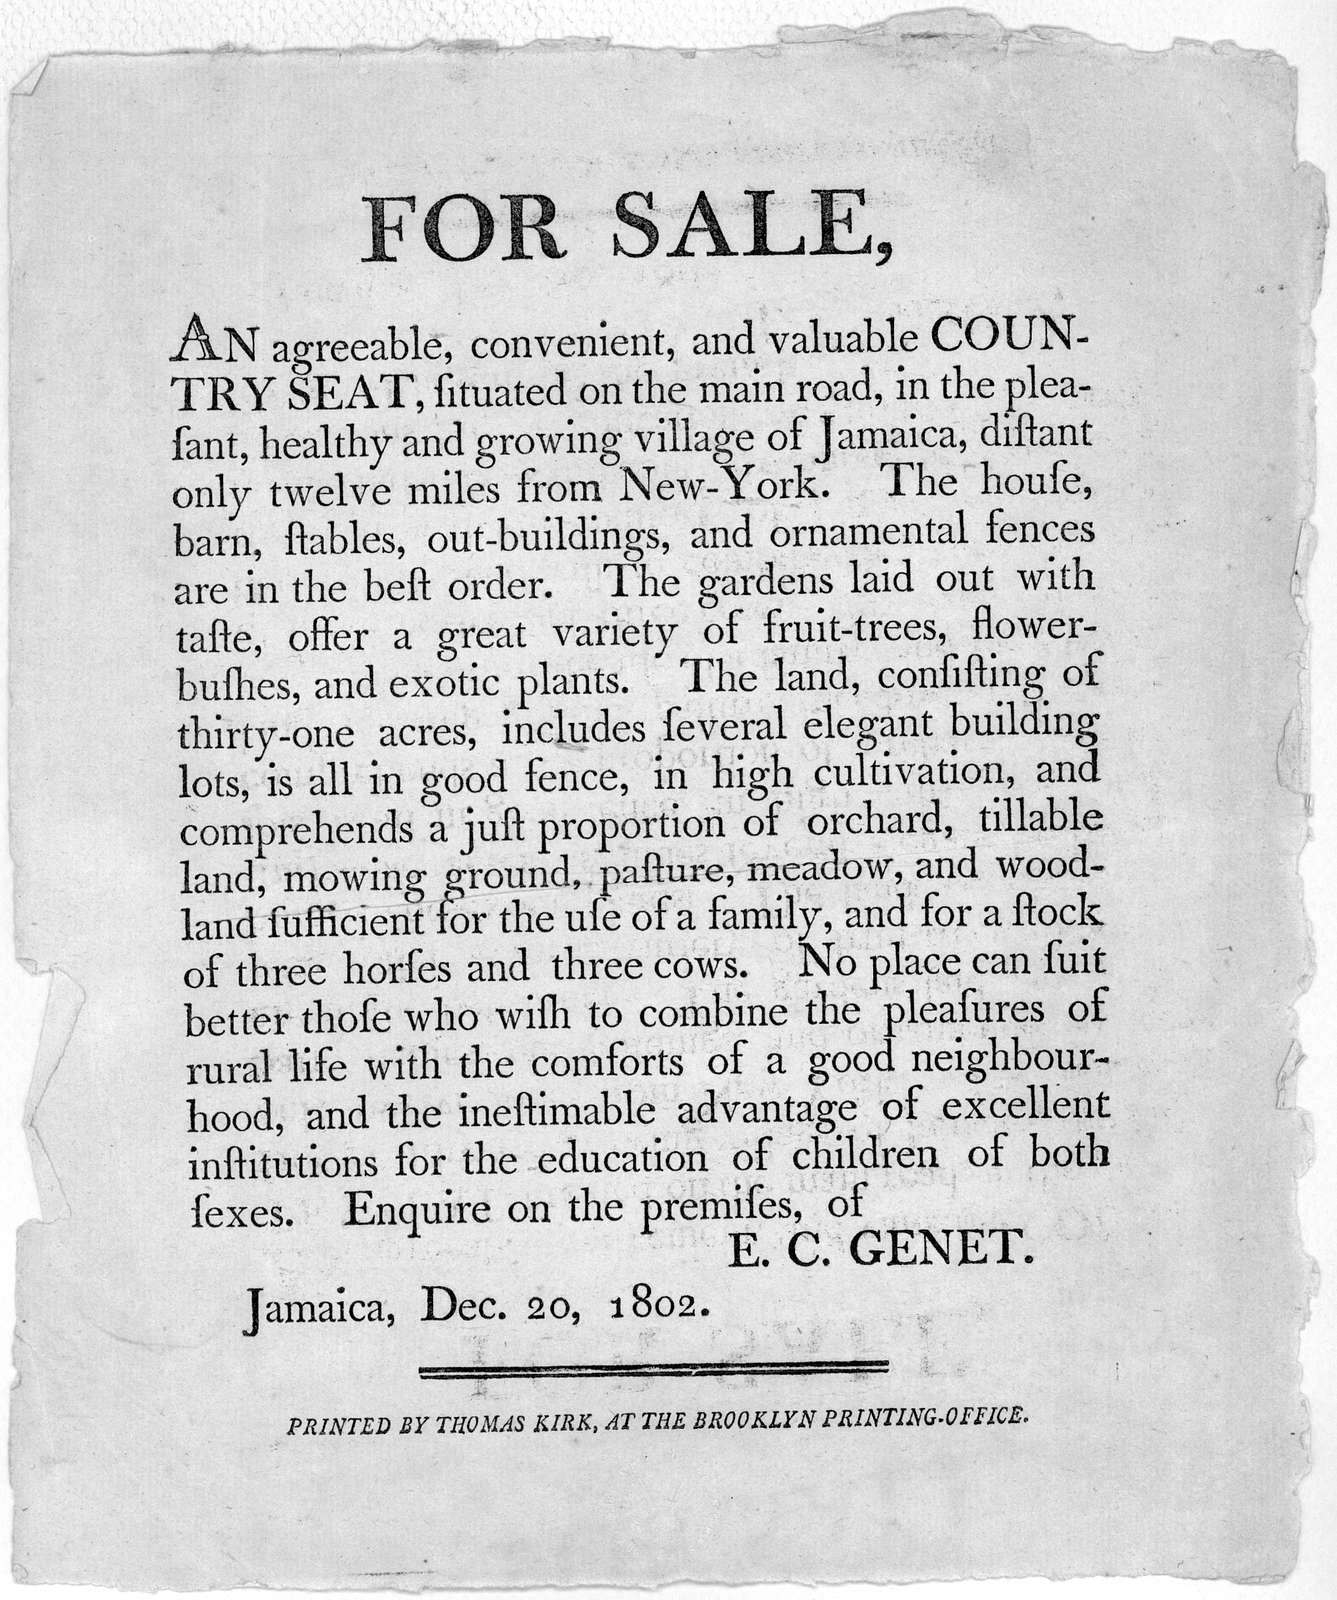 For sale, an agreeable, convenient, and valuable country seat, situated on the main road, in the pleasant, healthy and growing village of Jamaica, distant only twelve miles from New-York ... Brooklyn, Printed by Thomas Kirk [1802].